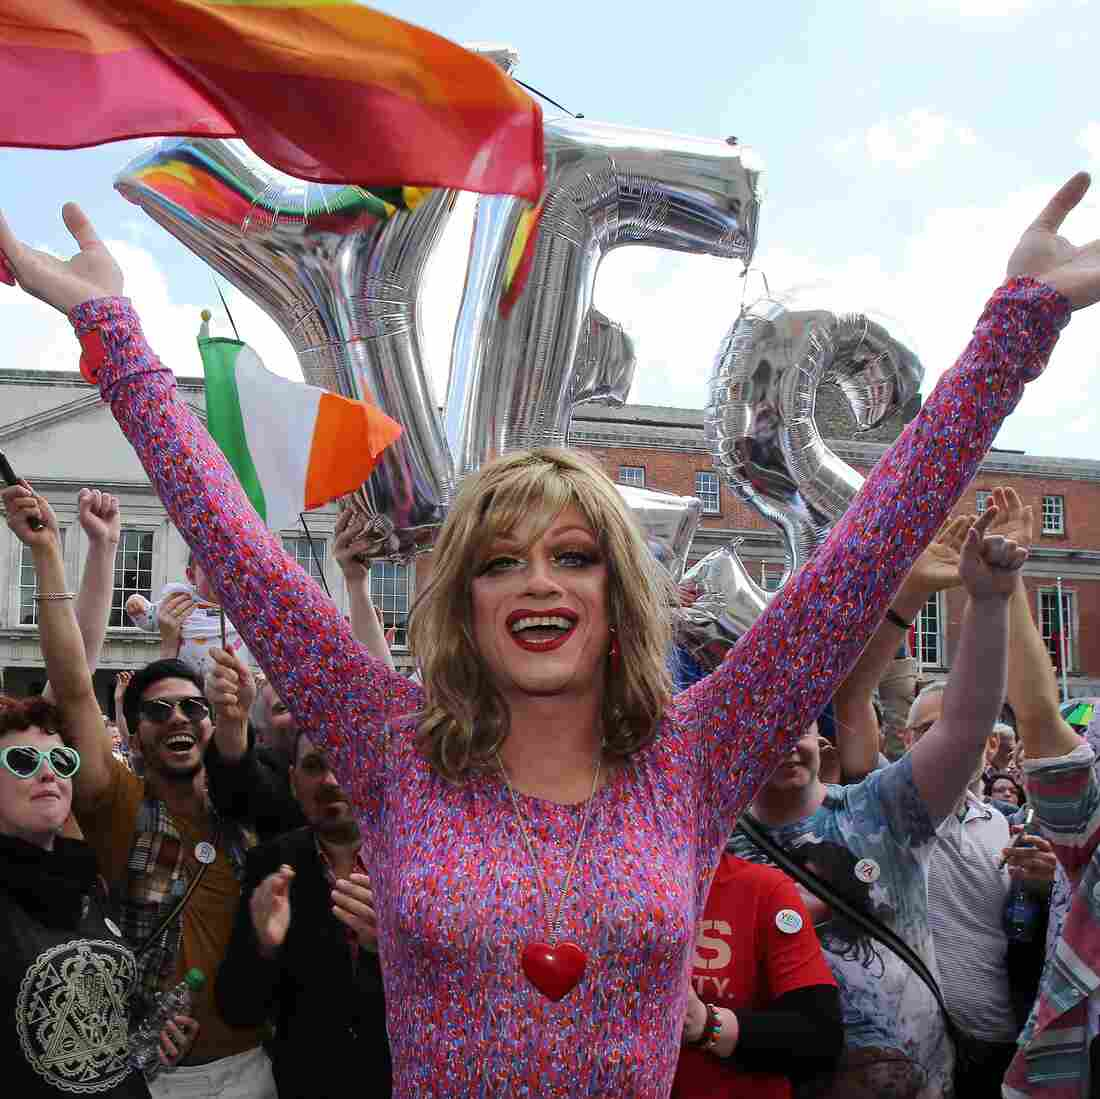 Ireland Votes Overwhelmingly To Approve Same-Sex Marriage